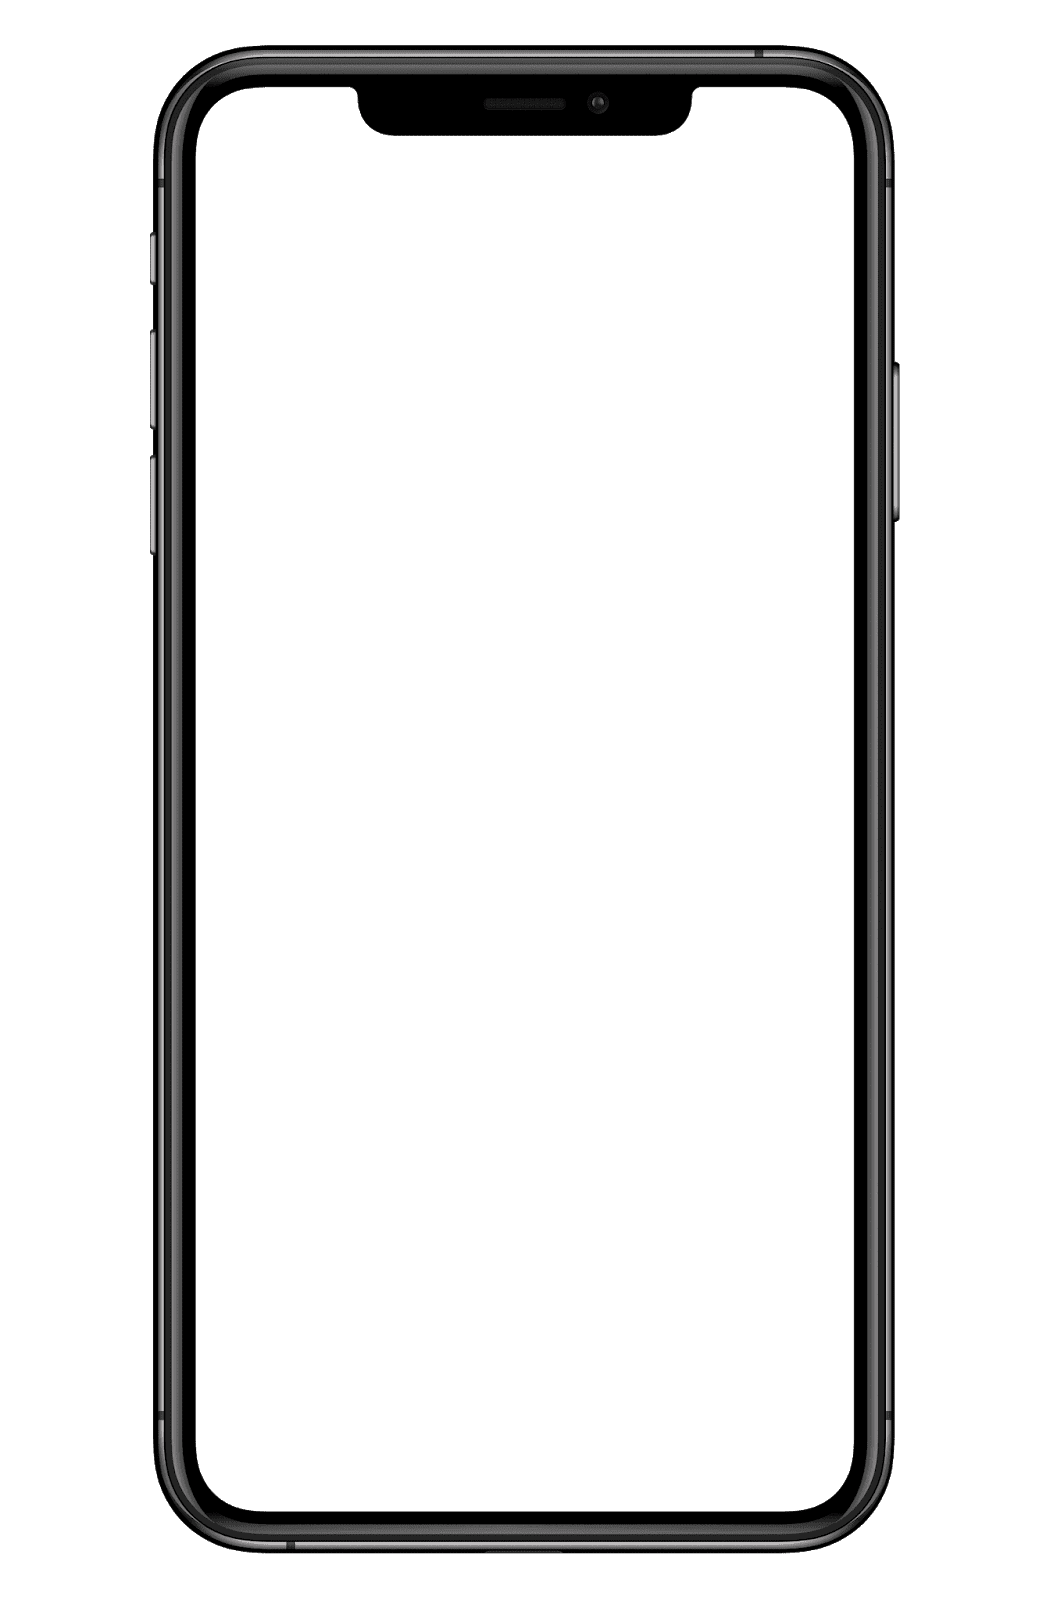 Mobile Frame for png image High Quality.